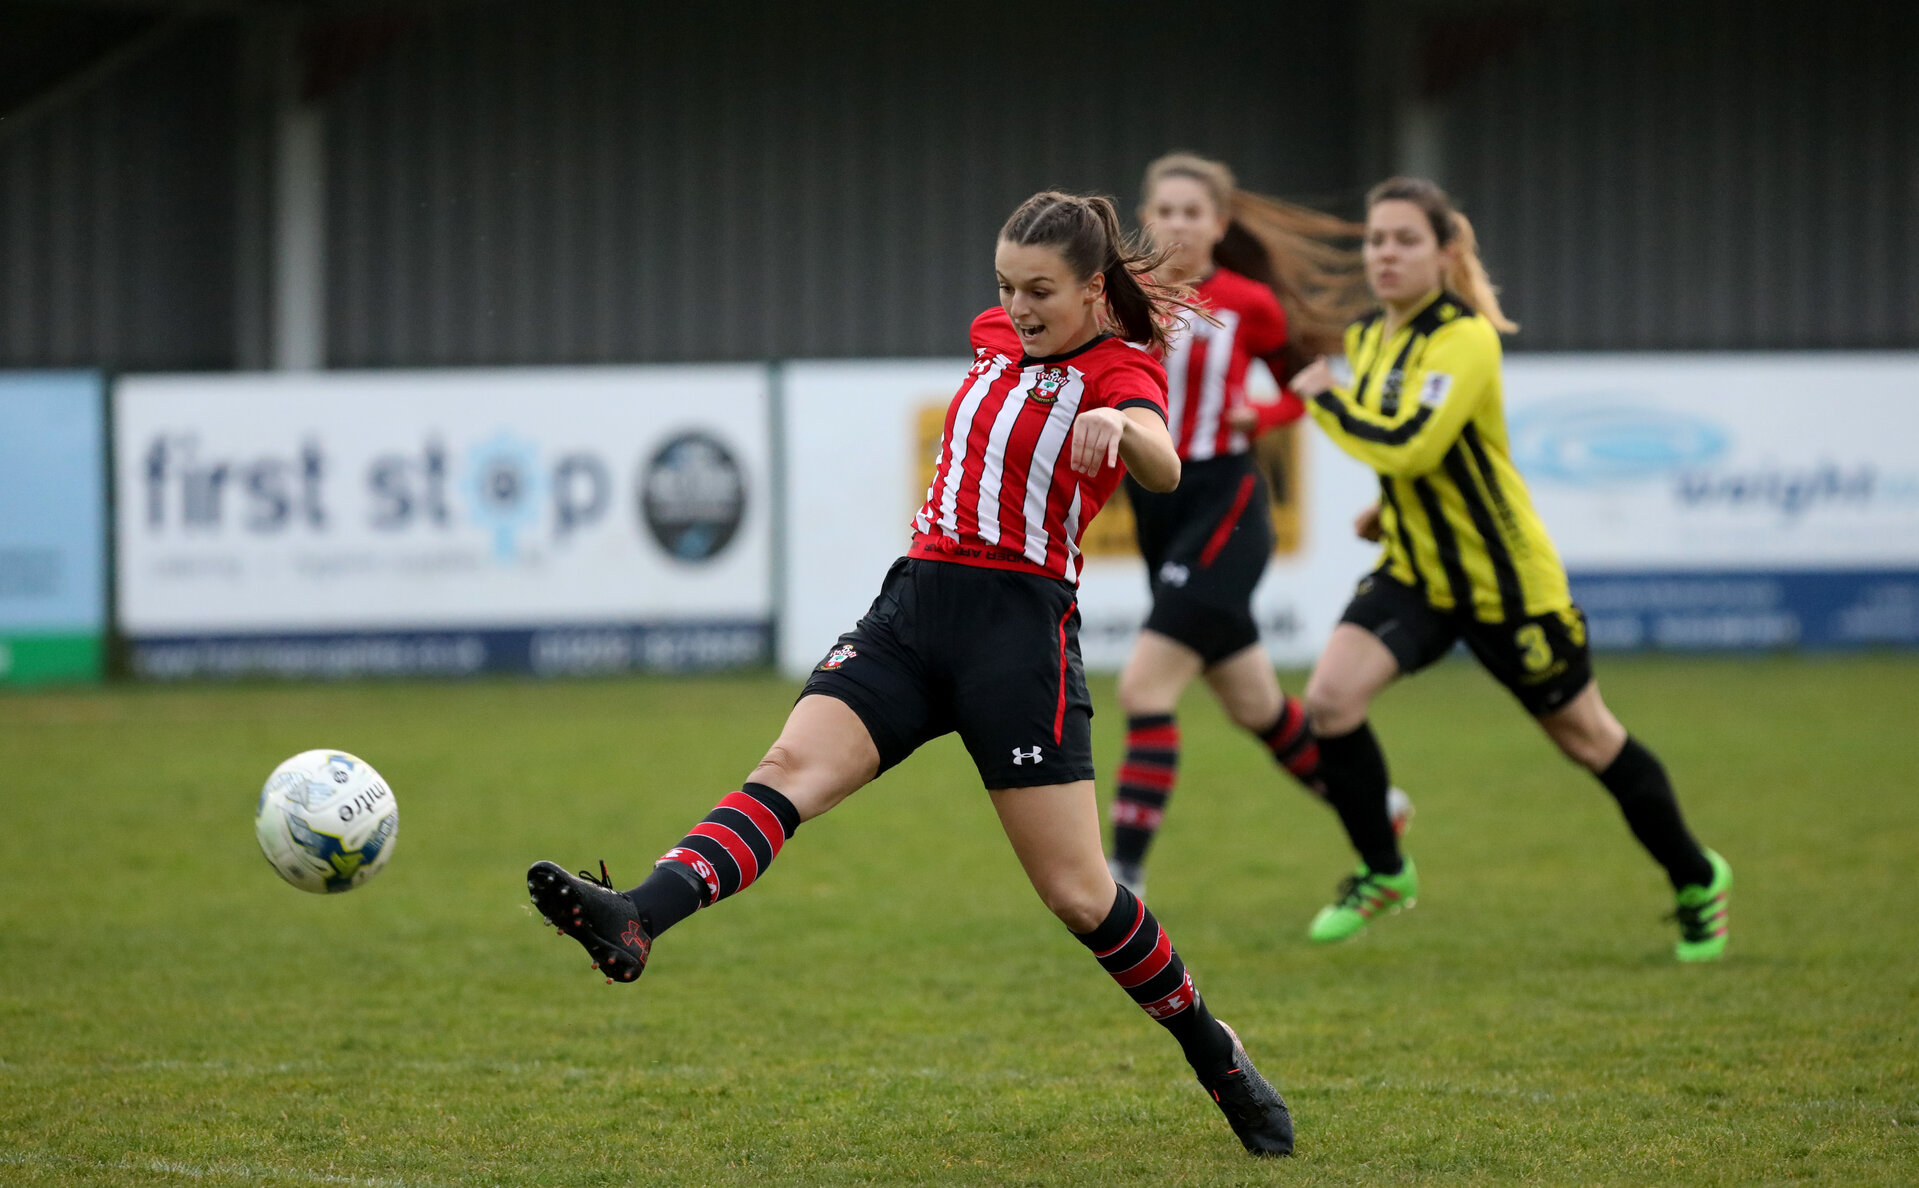 Chloe Newton. Southampton Women v Warsash Wasps, Testwood Stadium, Totton.                      Picture: Chris Moorhouse           Wednesday 17th April 2019